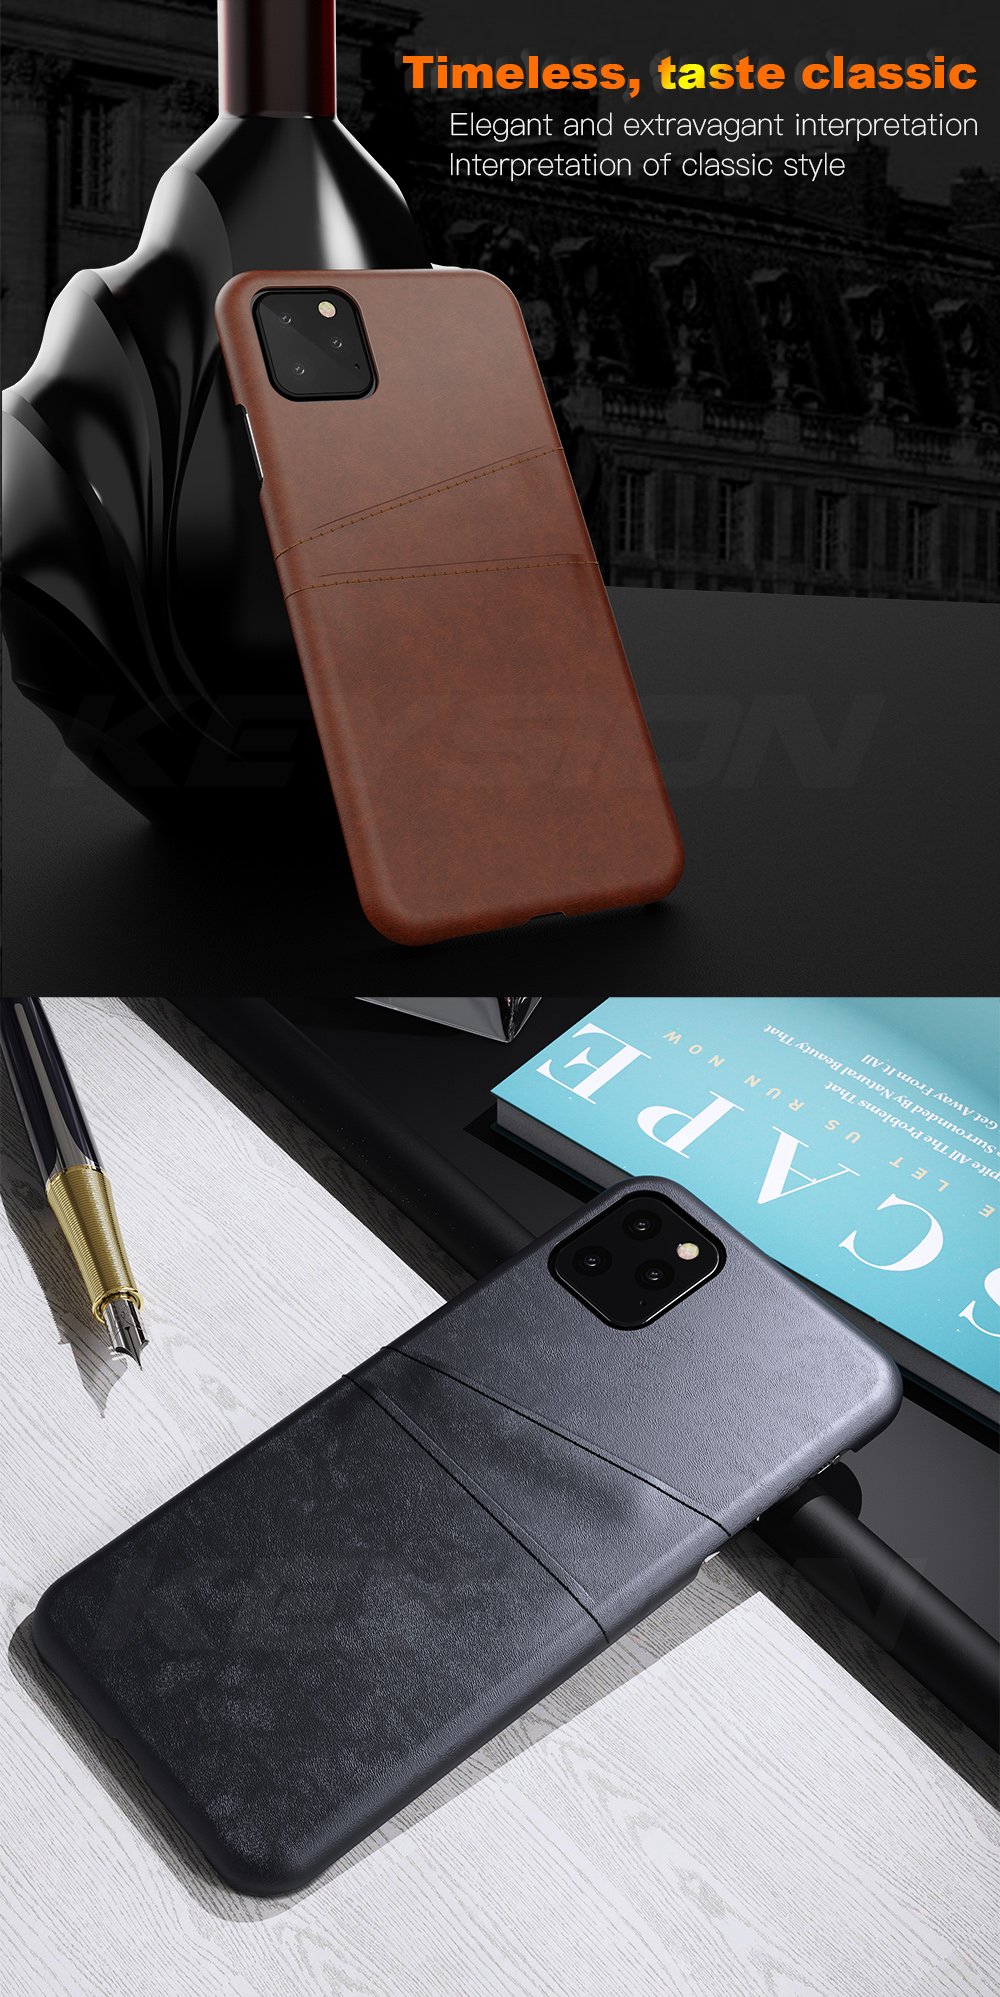 KEYSION Leather Card Pocket Cases for iPhone 11/11 Pro/11 Pro Max 3